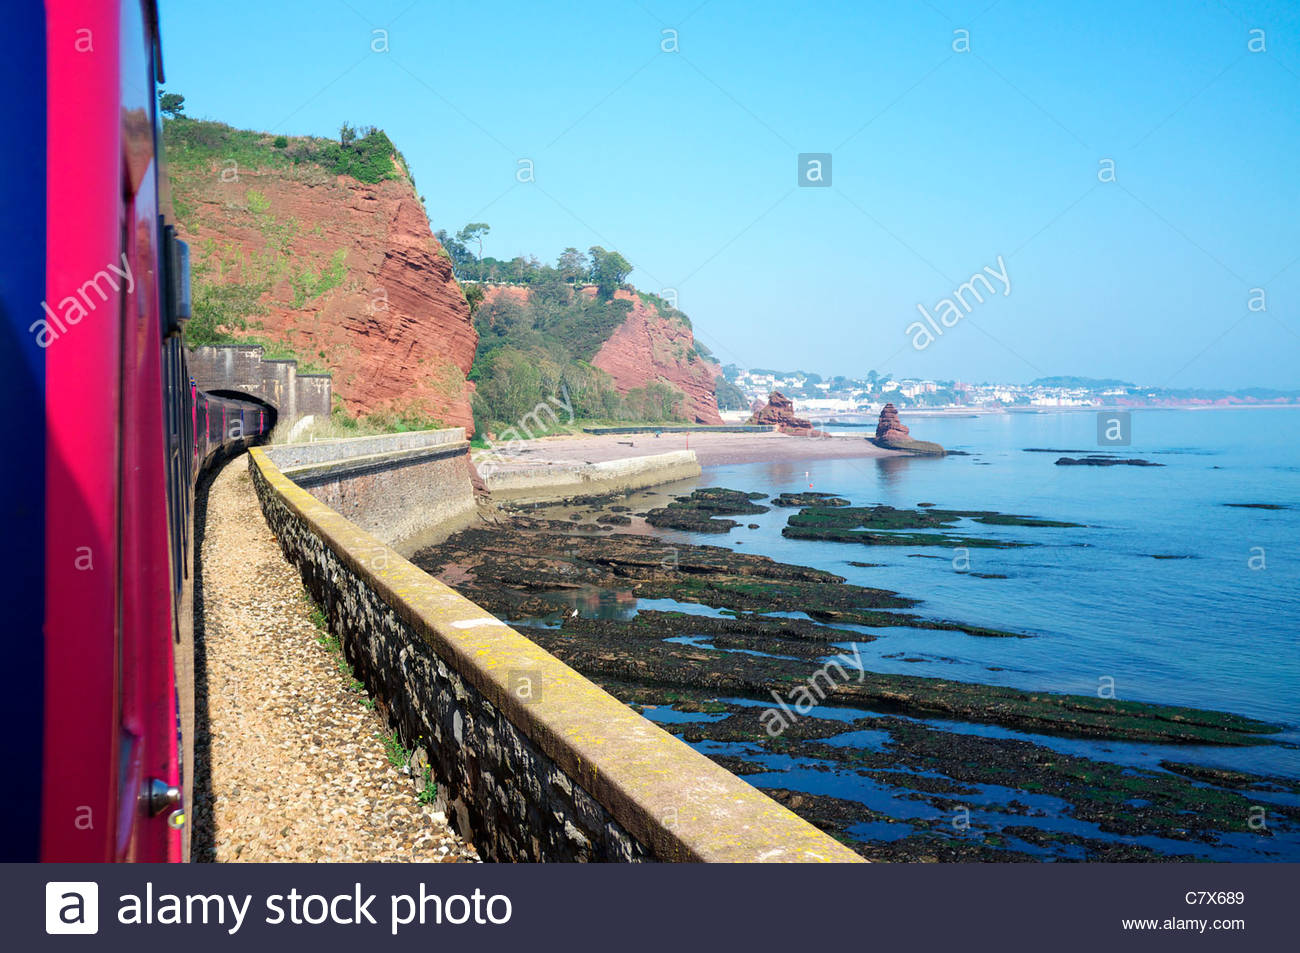 The Dawlish seawall railway section, in south Devon, UK. Stock Photo